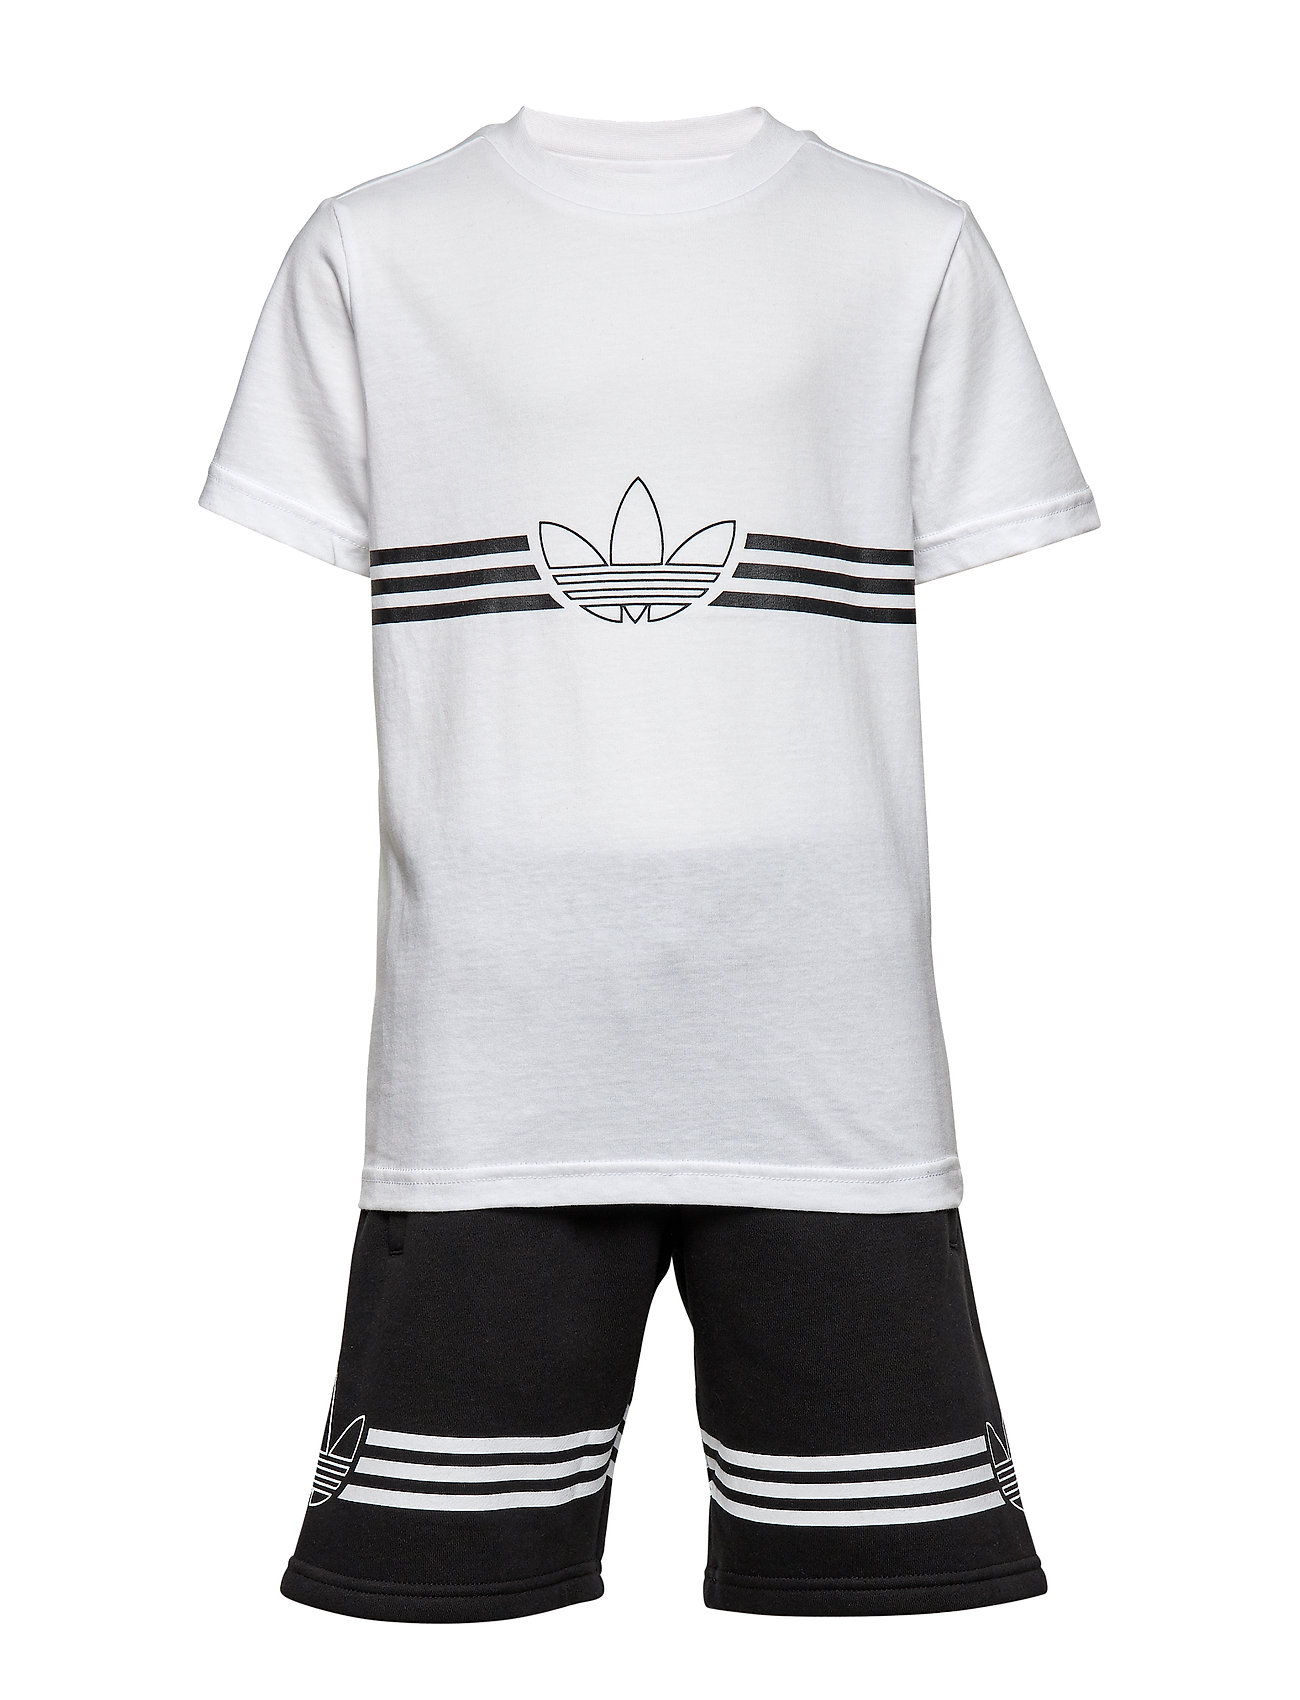 adidas Originals OUTLINE TEE SET - WHITE/BLACK